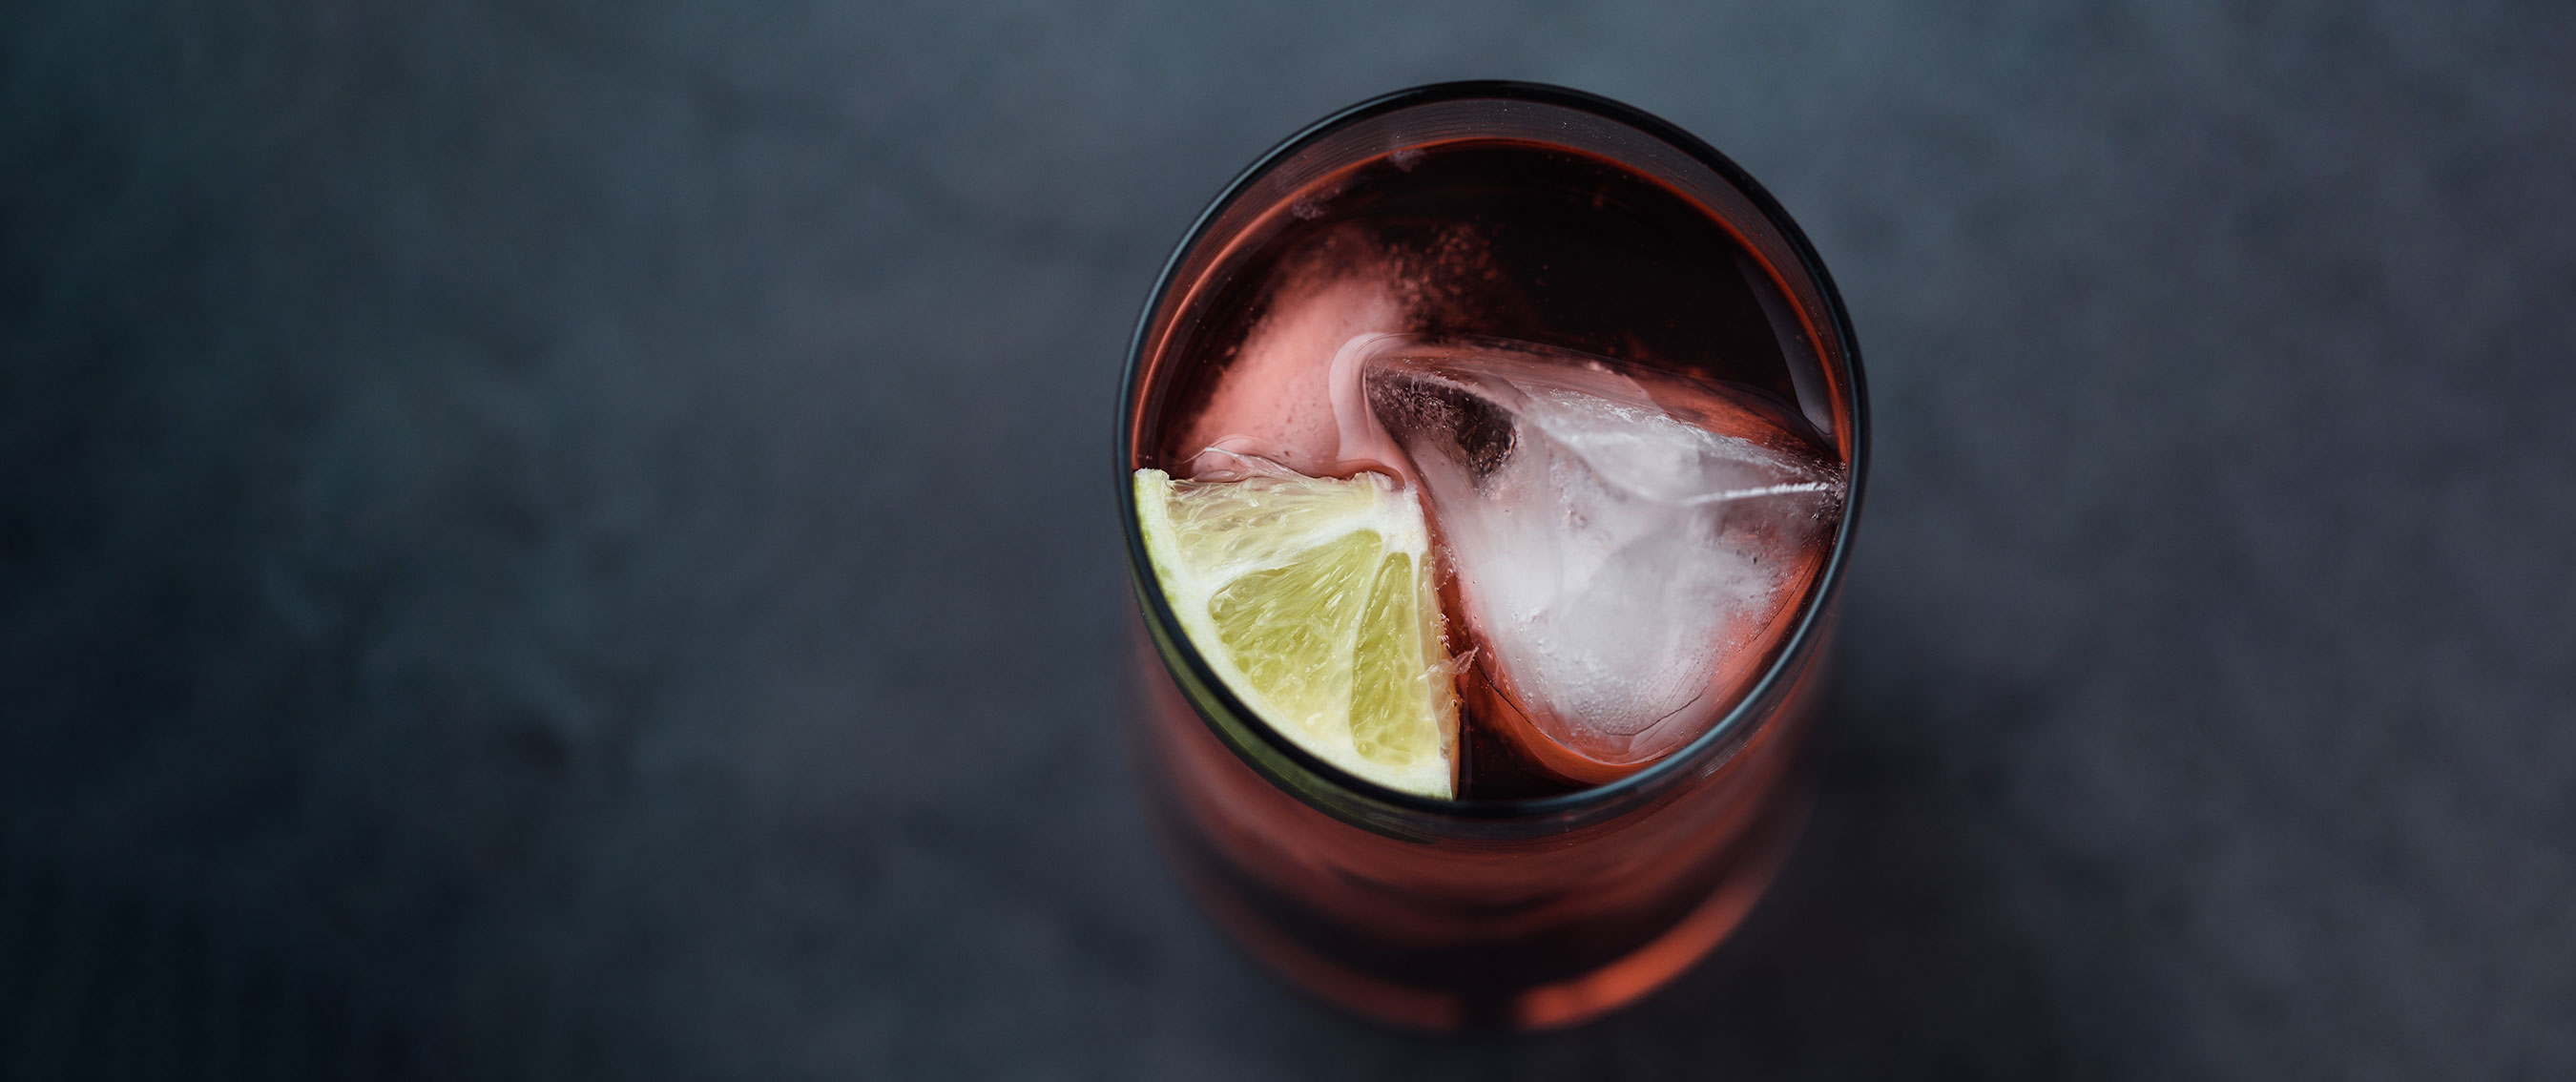 Cocktail of the Week: How to make the Mandarin Oriental's Boulevardier